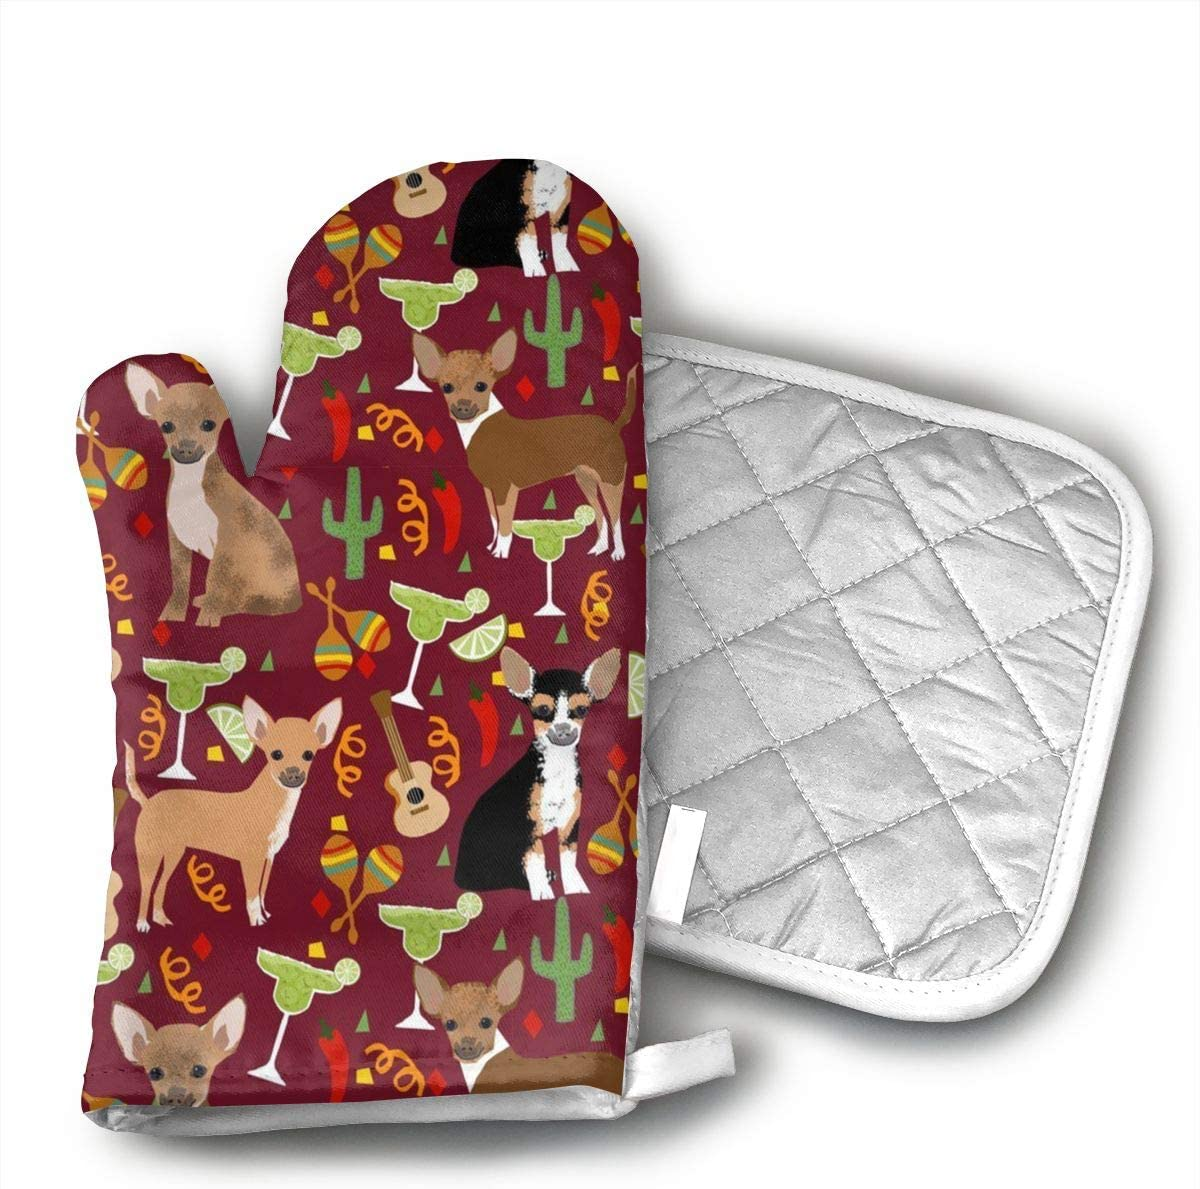 Wiqo9 Chihuahua Fiesta Oven Mitts and Pot Holders Kitchen Mitten Cooking Gloves,Cooking, Baking, BBQ.